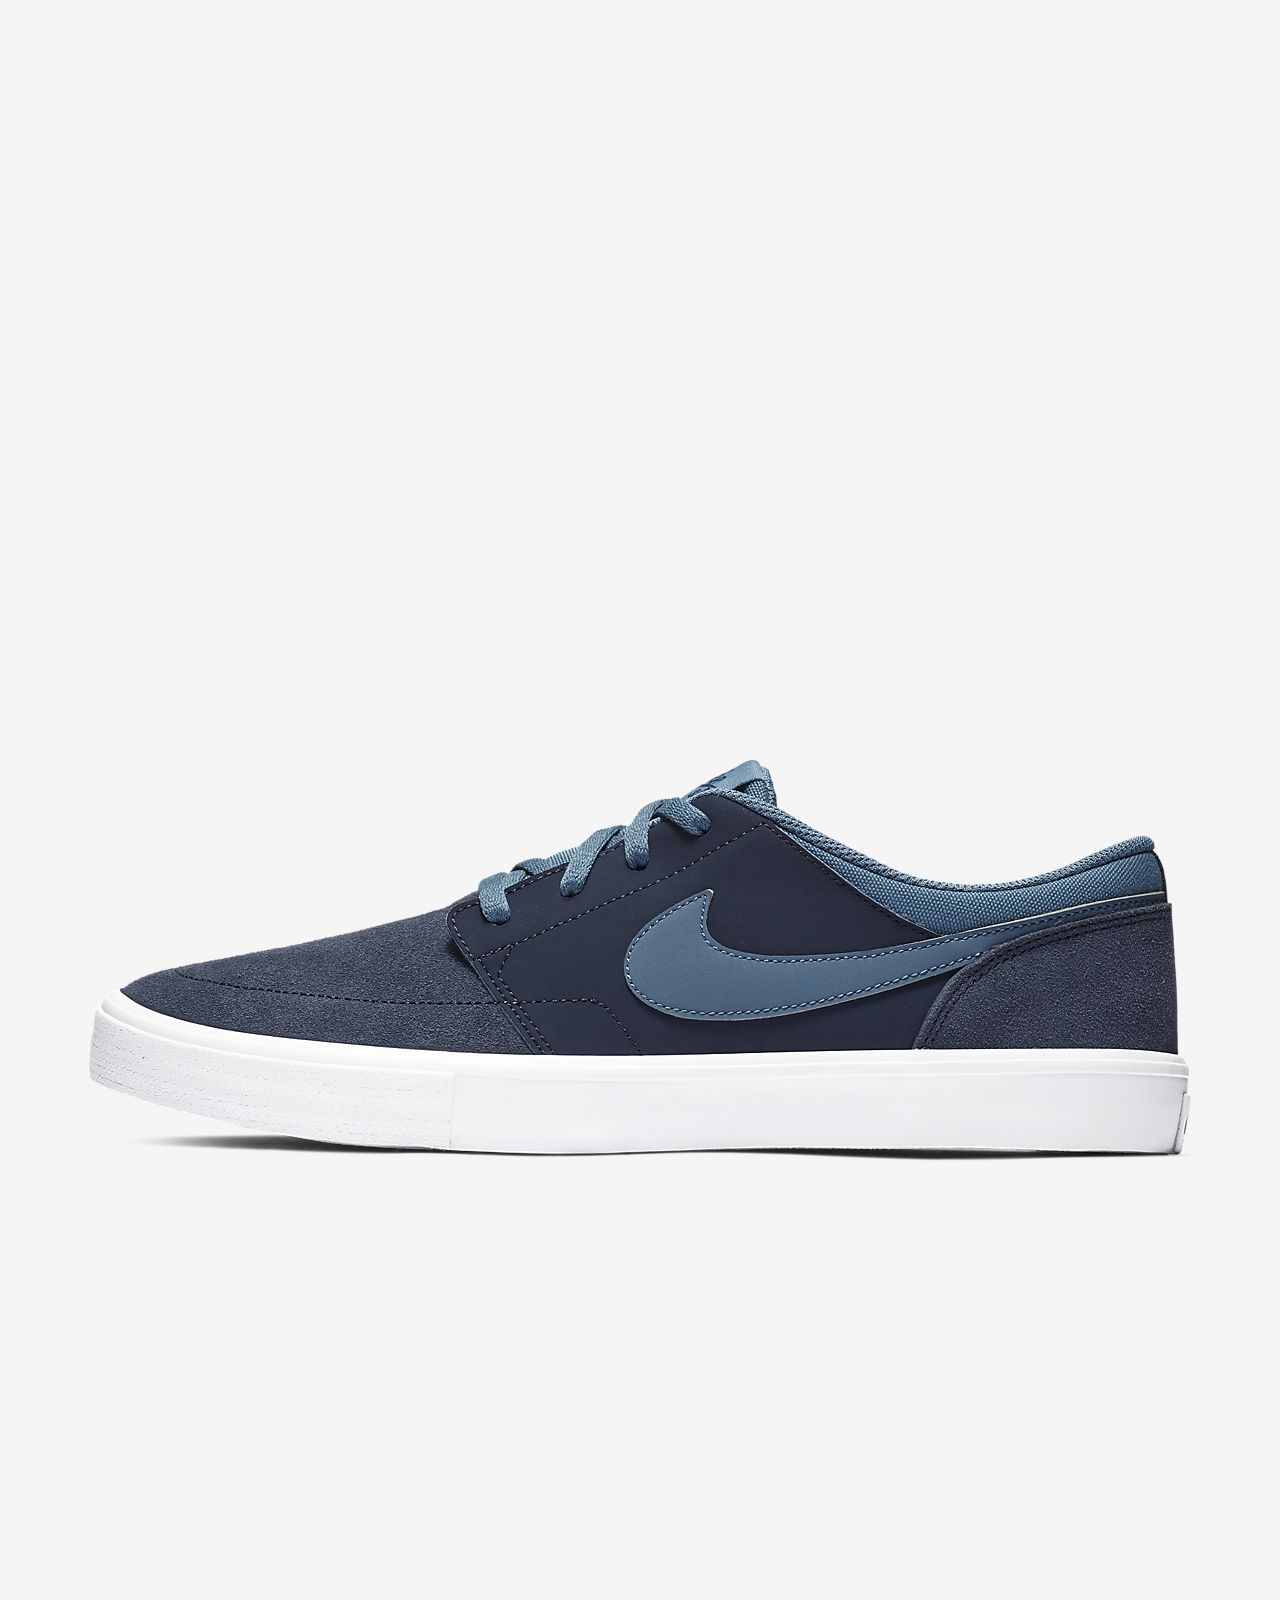 Chaussure de skateboard Nike SB Solarsoft Portmore II pour Homme